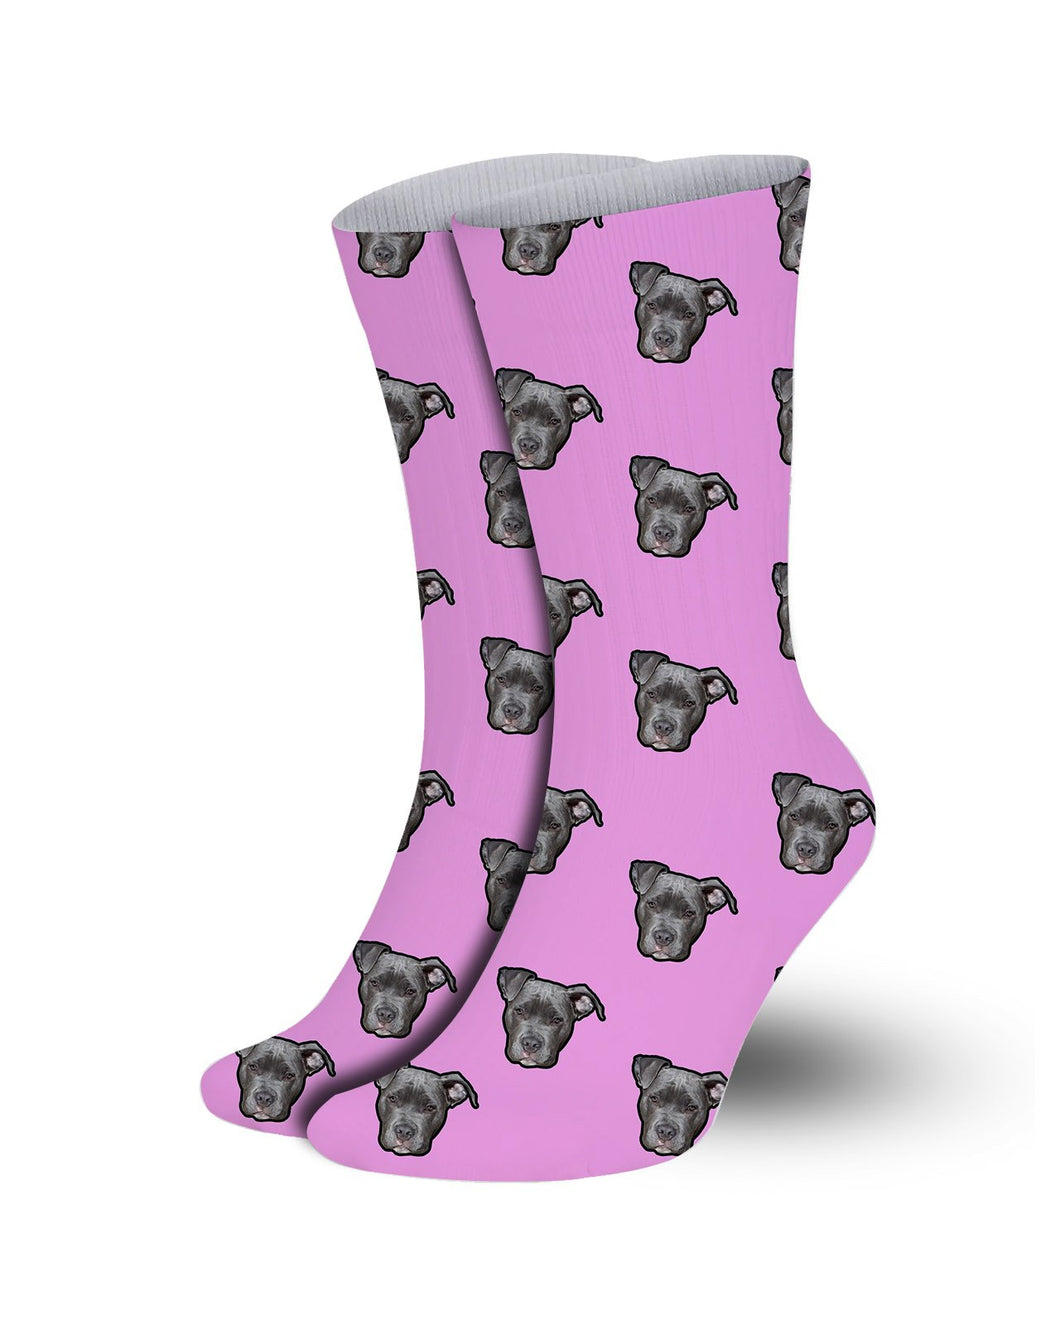 Customized Pet socks- Pink background-Print your pet